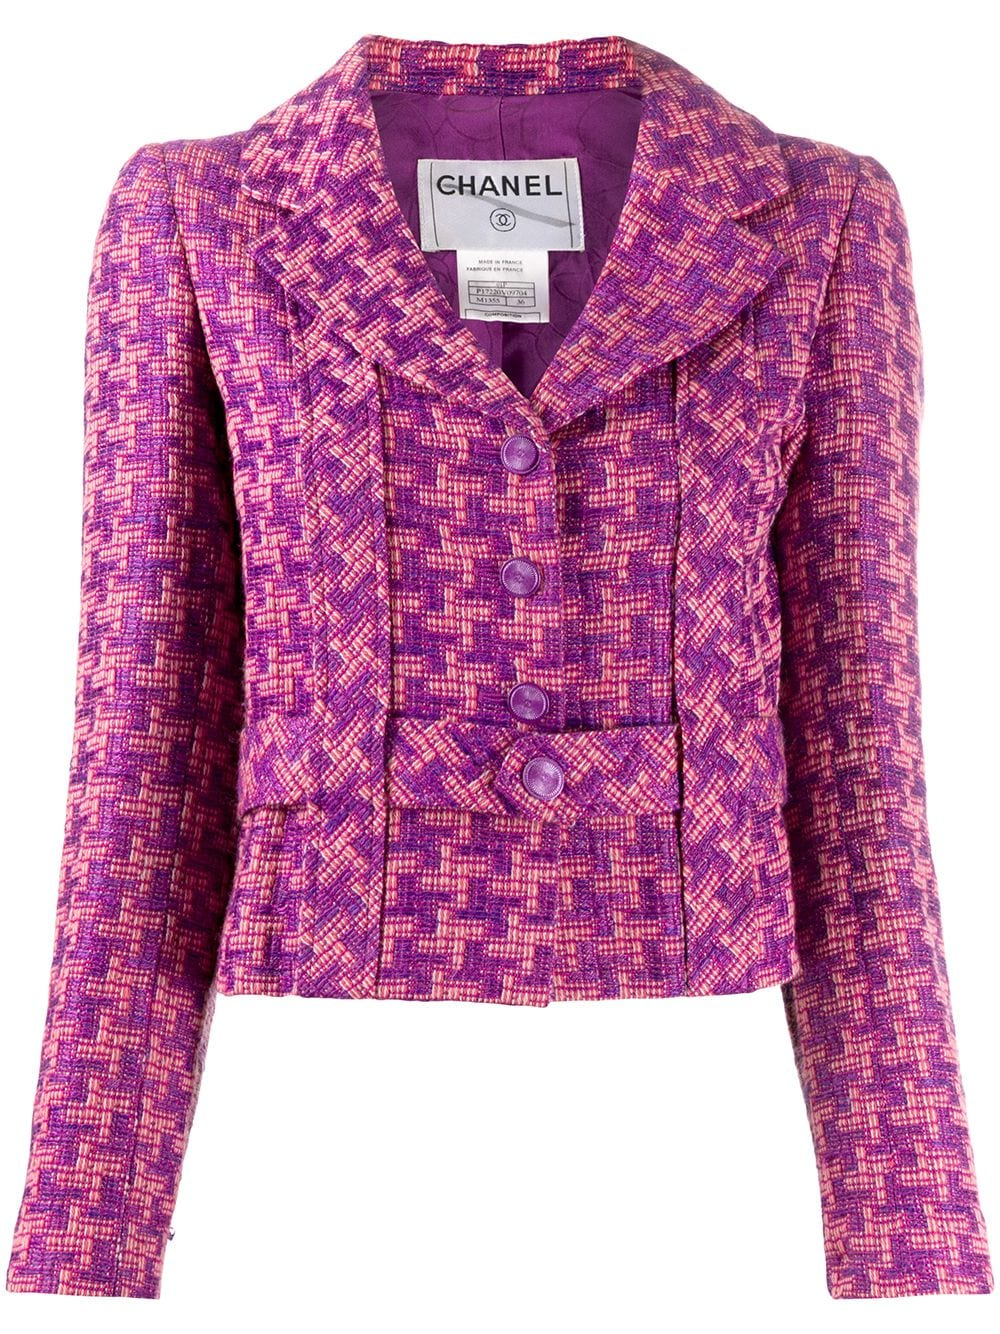 chanel-pre-owned-houndstooth-pattern-belted-jacket